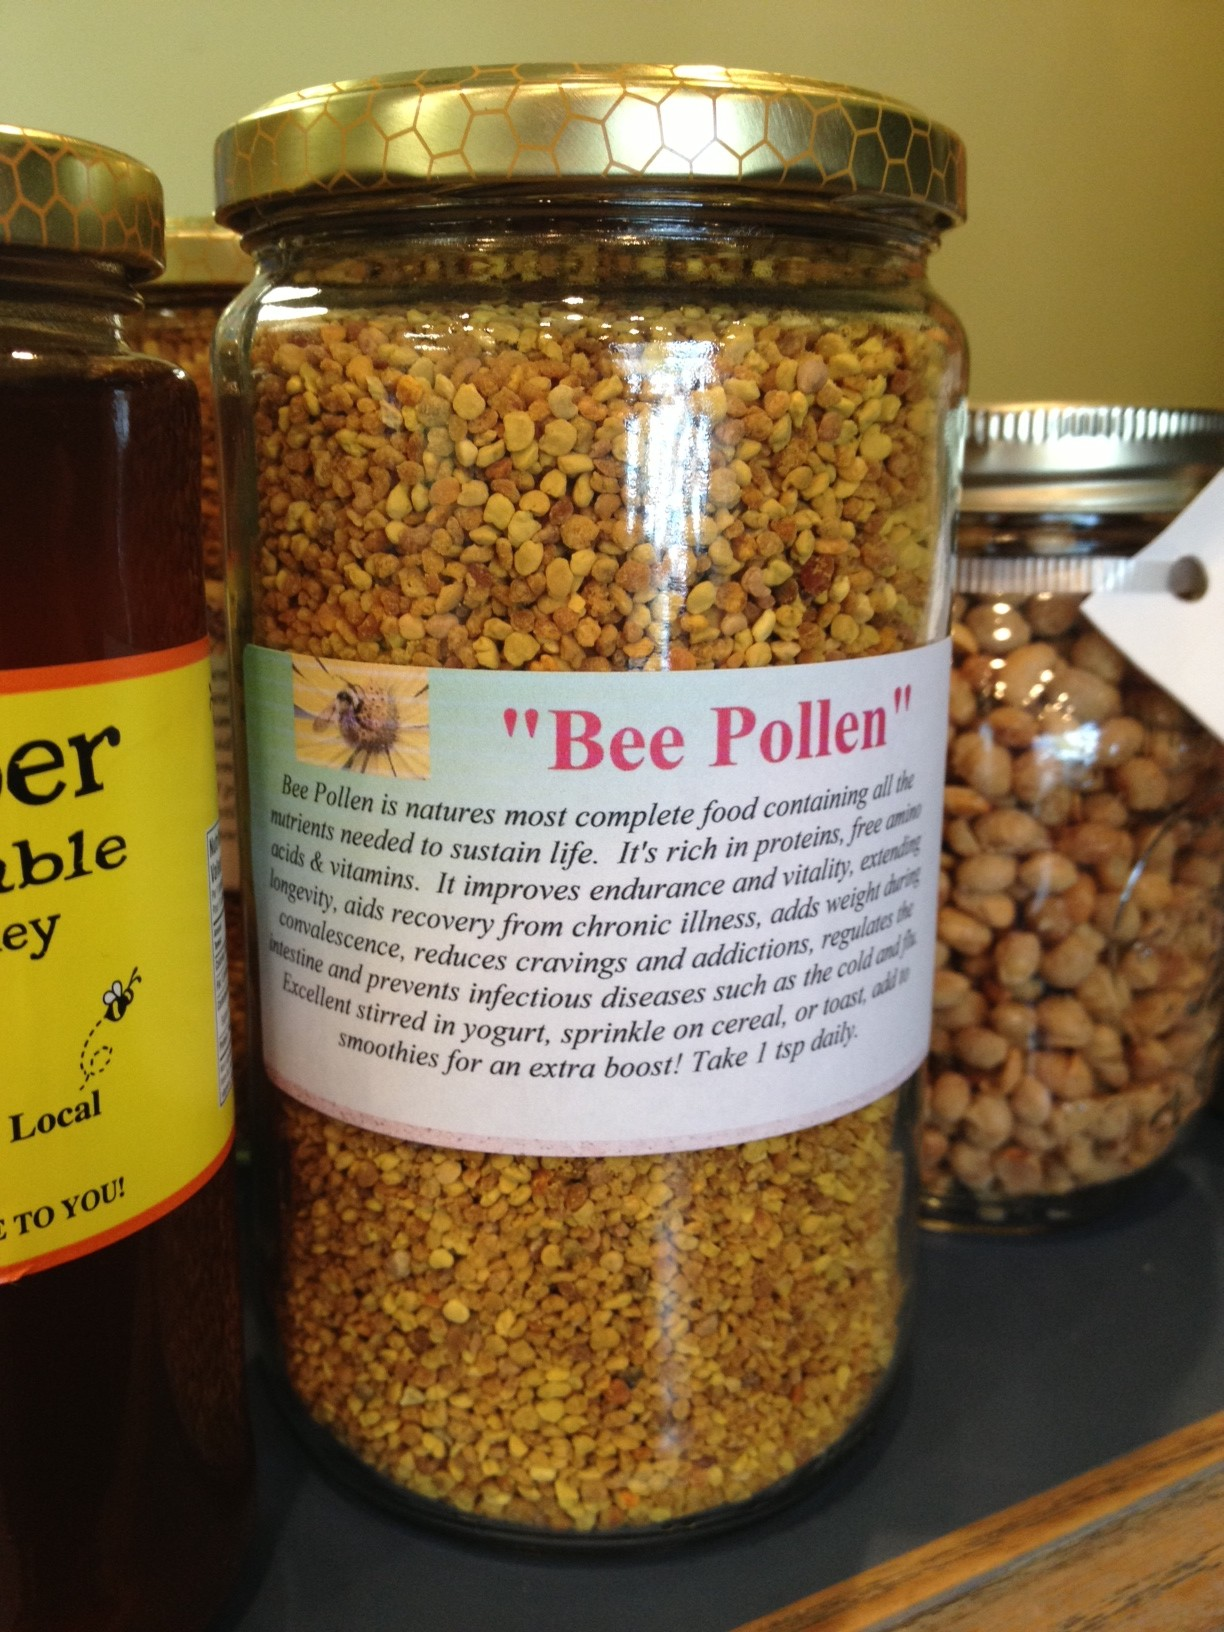 This is a jar of bee pollen I found for sale at The Lauriam Tea House in Bowmanville.  This jar is about $22.